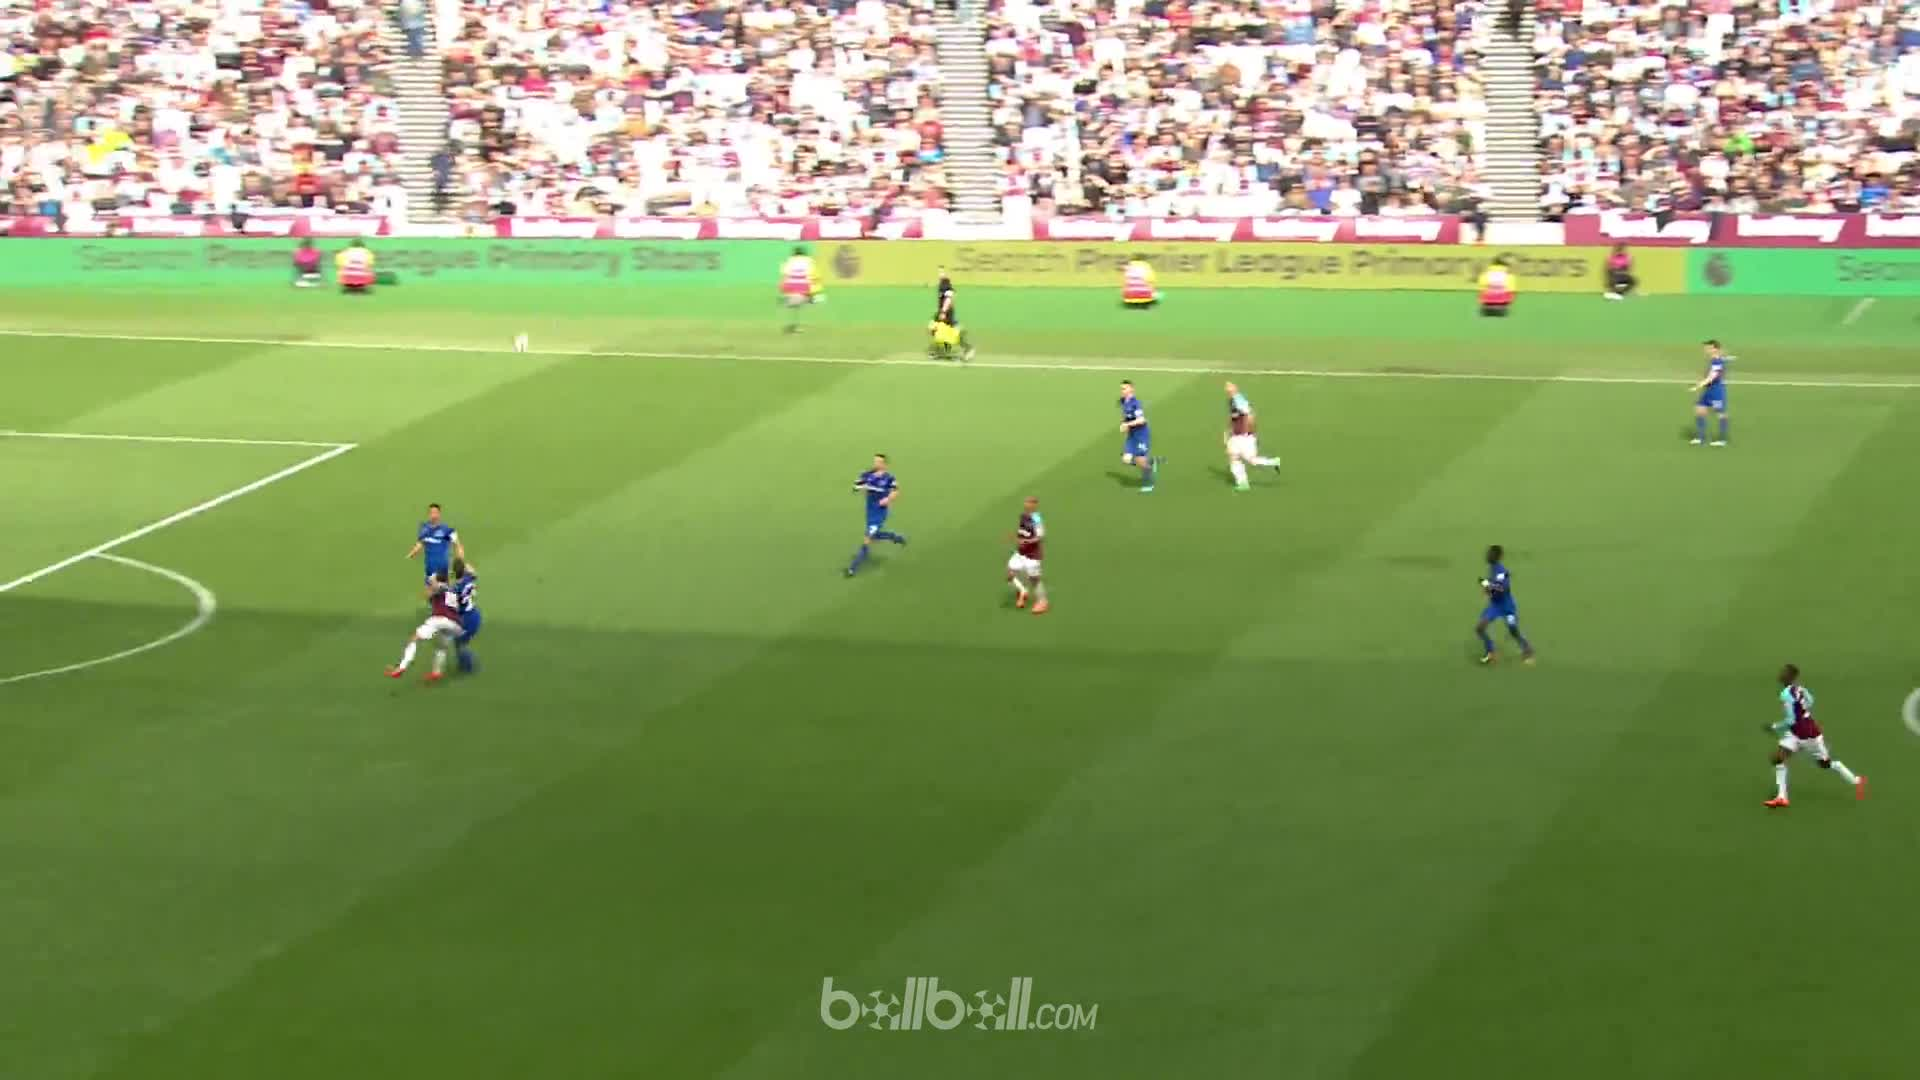 Goal M Lanzini (82) West Ham 3 - 1 Everton